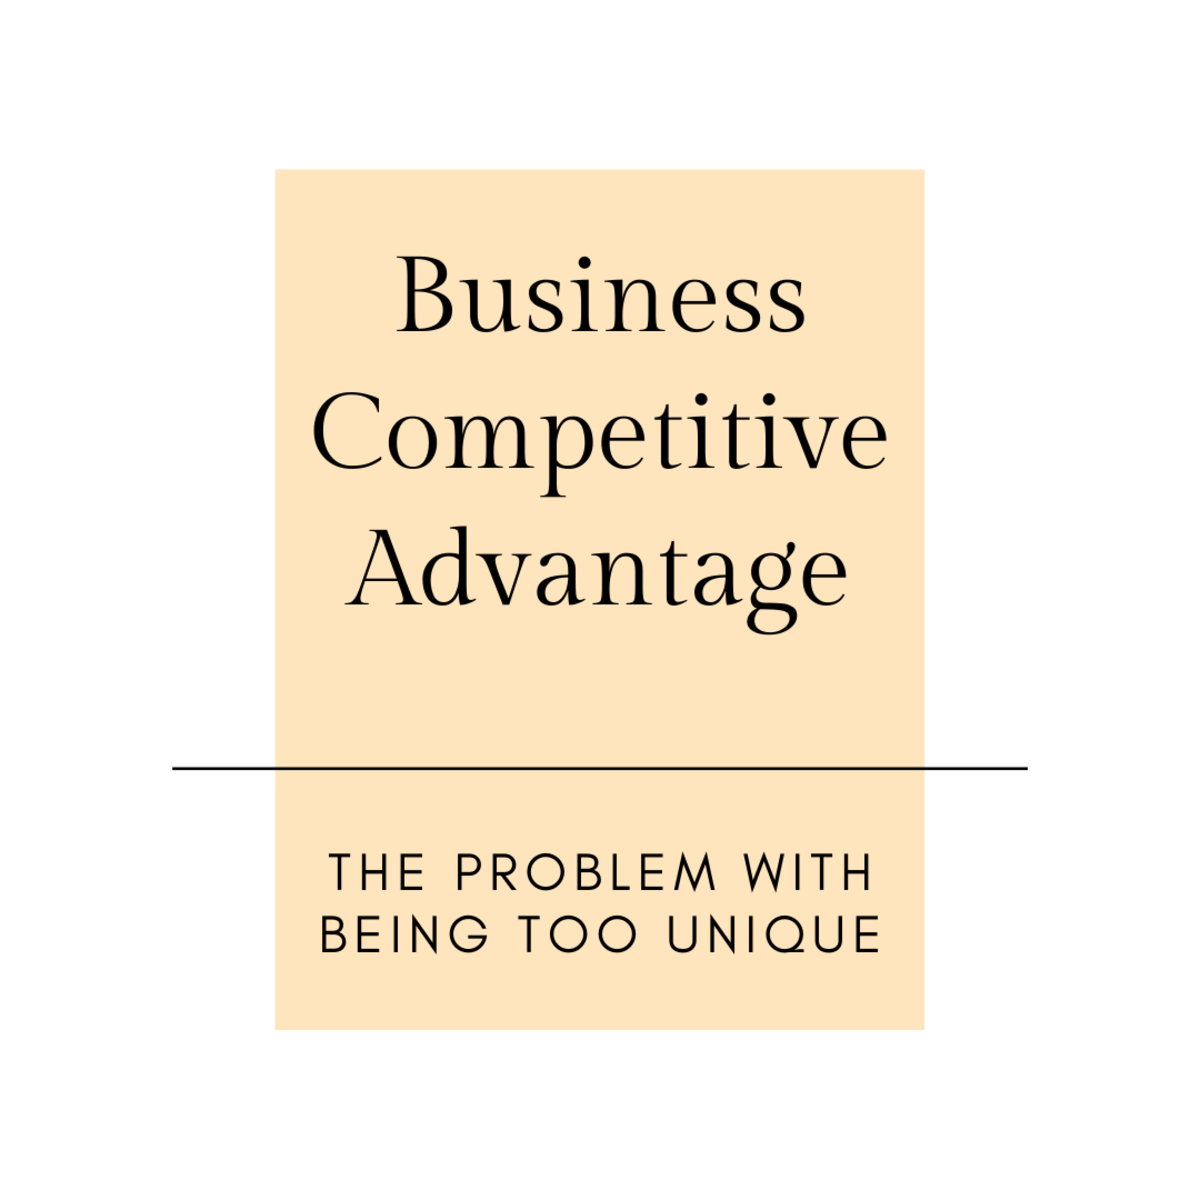 Business Competitive Advantage: The Problem With Being Too Unique